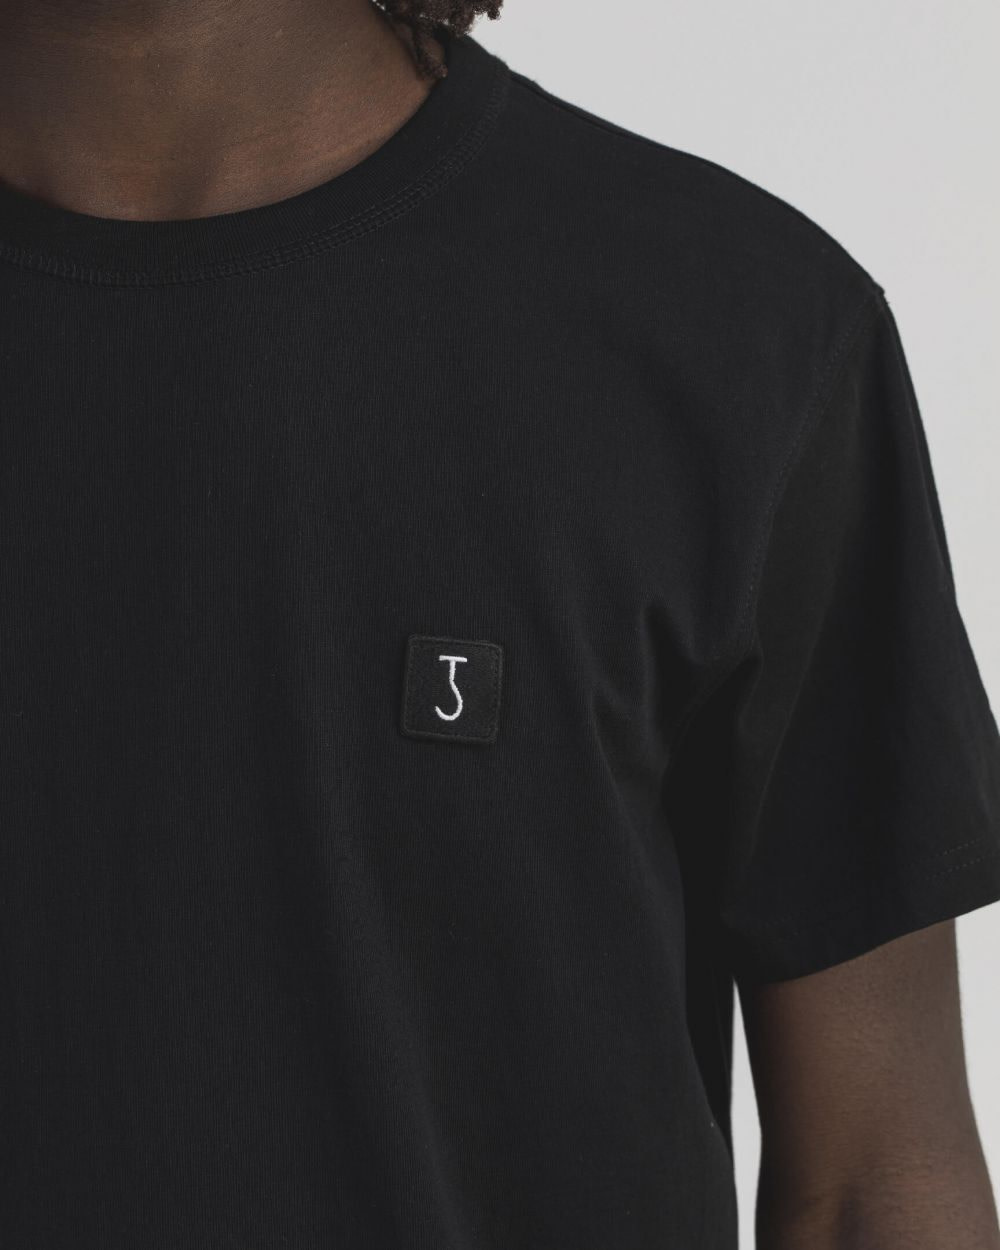 Army Tee s/s off black-2